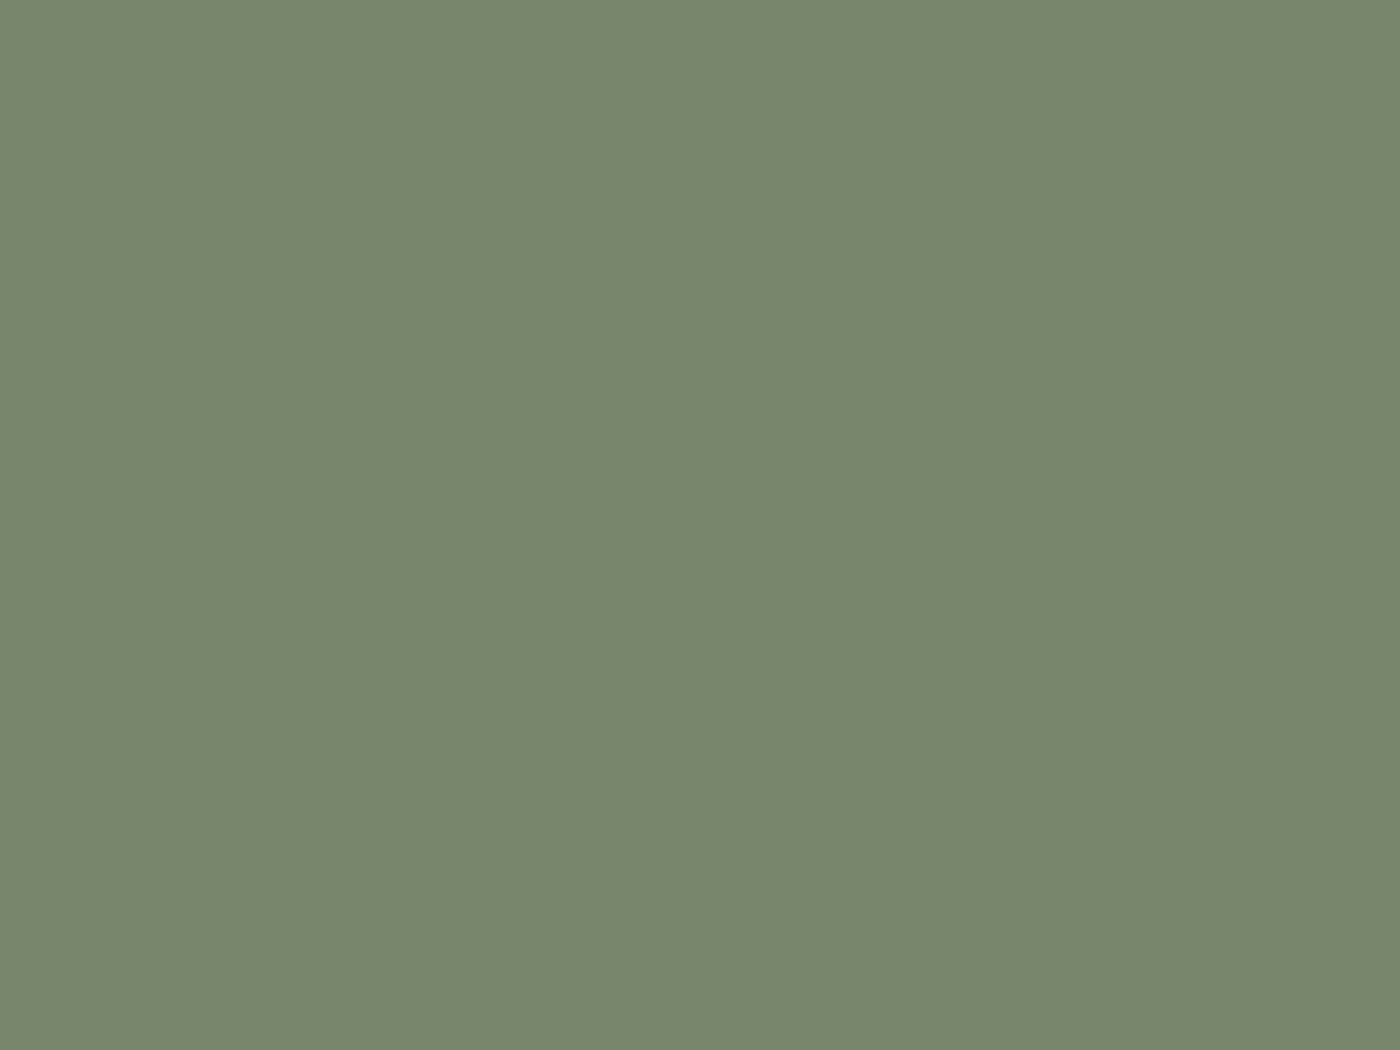 1400x1050 Camouflage Green Solid Color Background